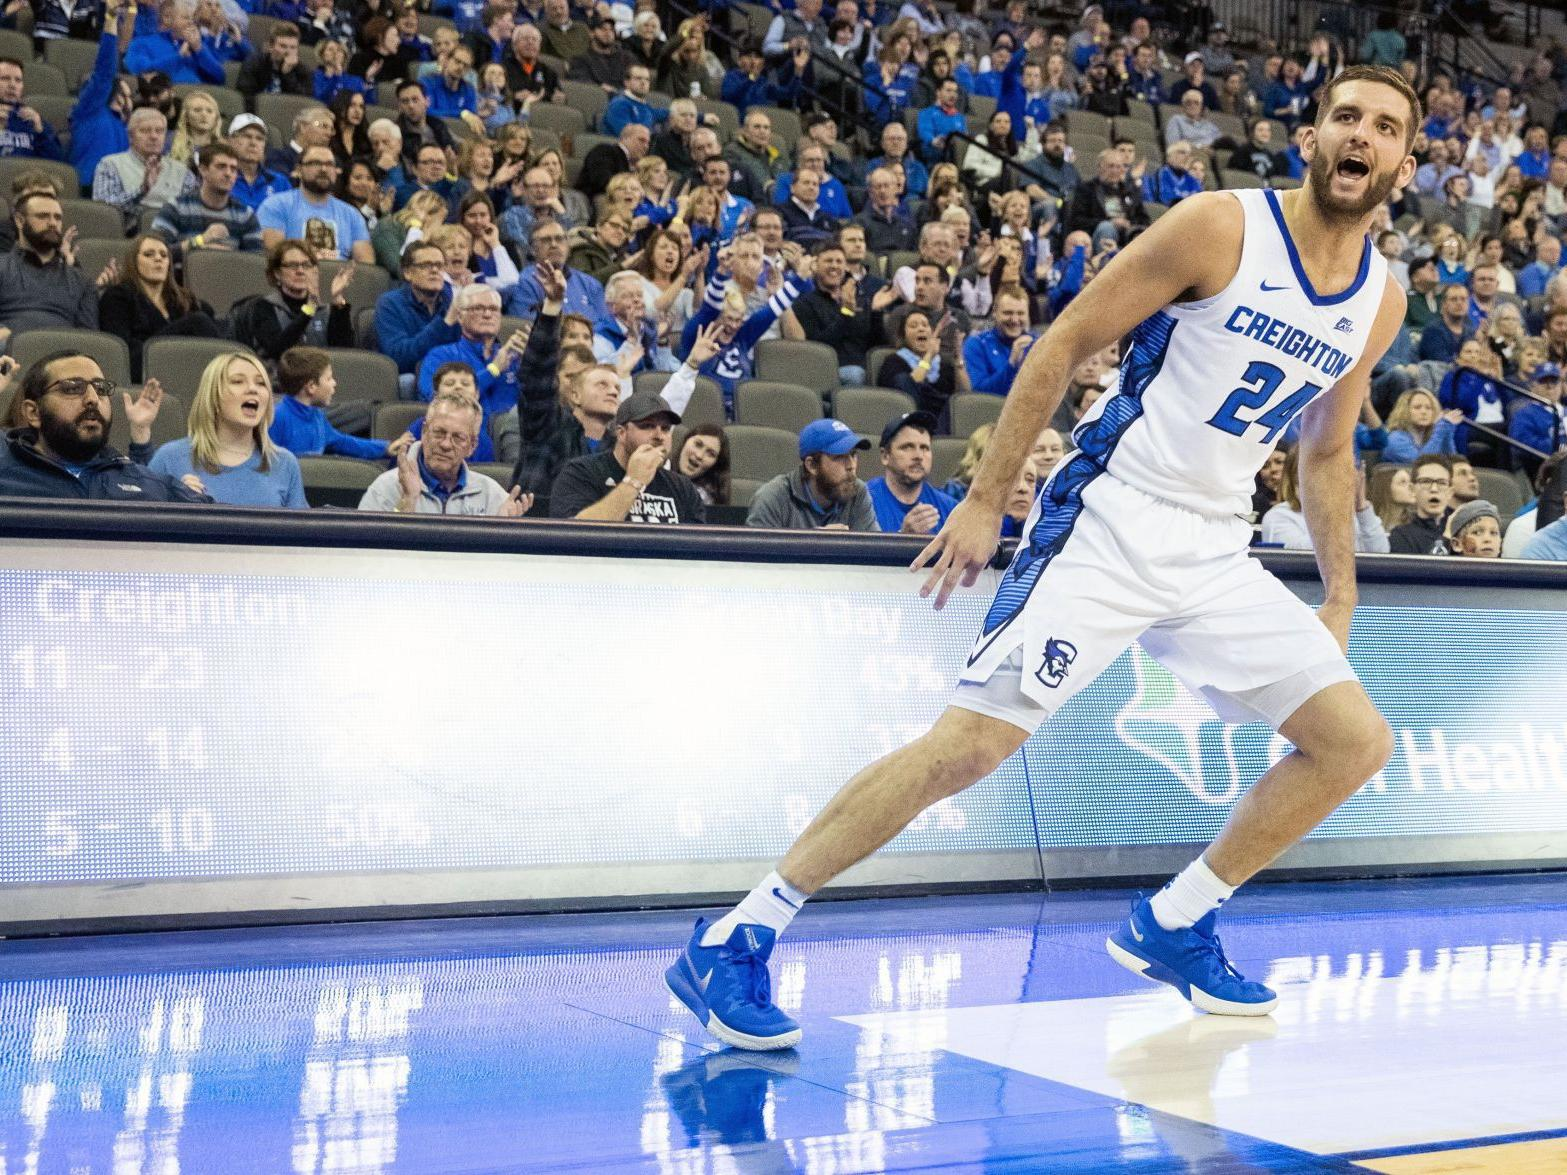 Creighton notes: Free throw woes, cleaner basketball and red-hot Mitch Ballock